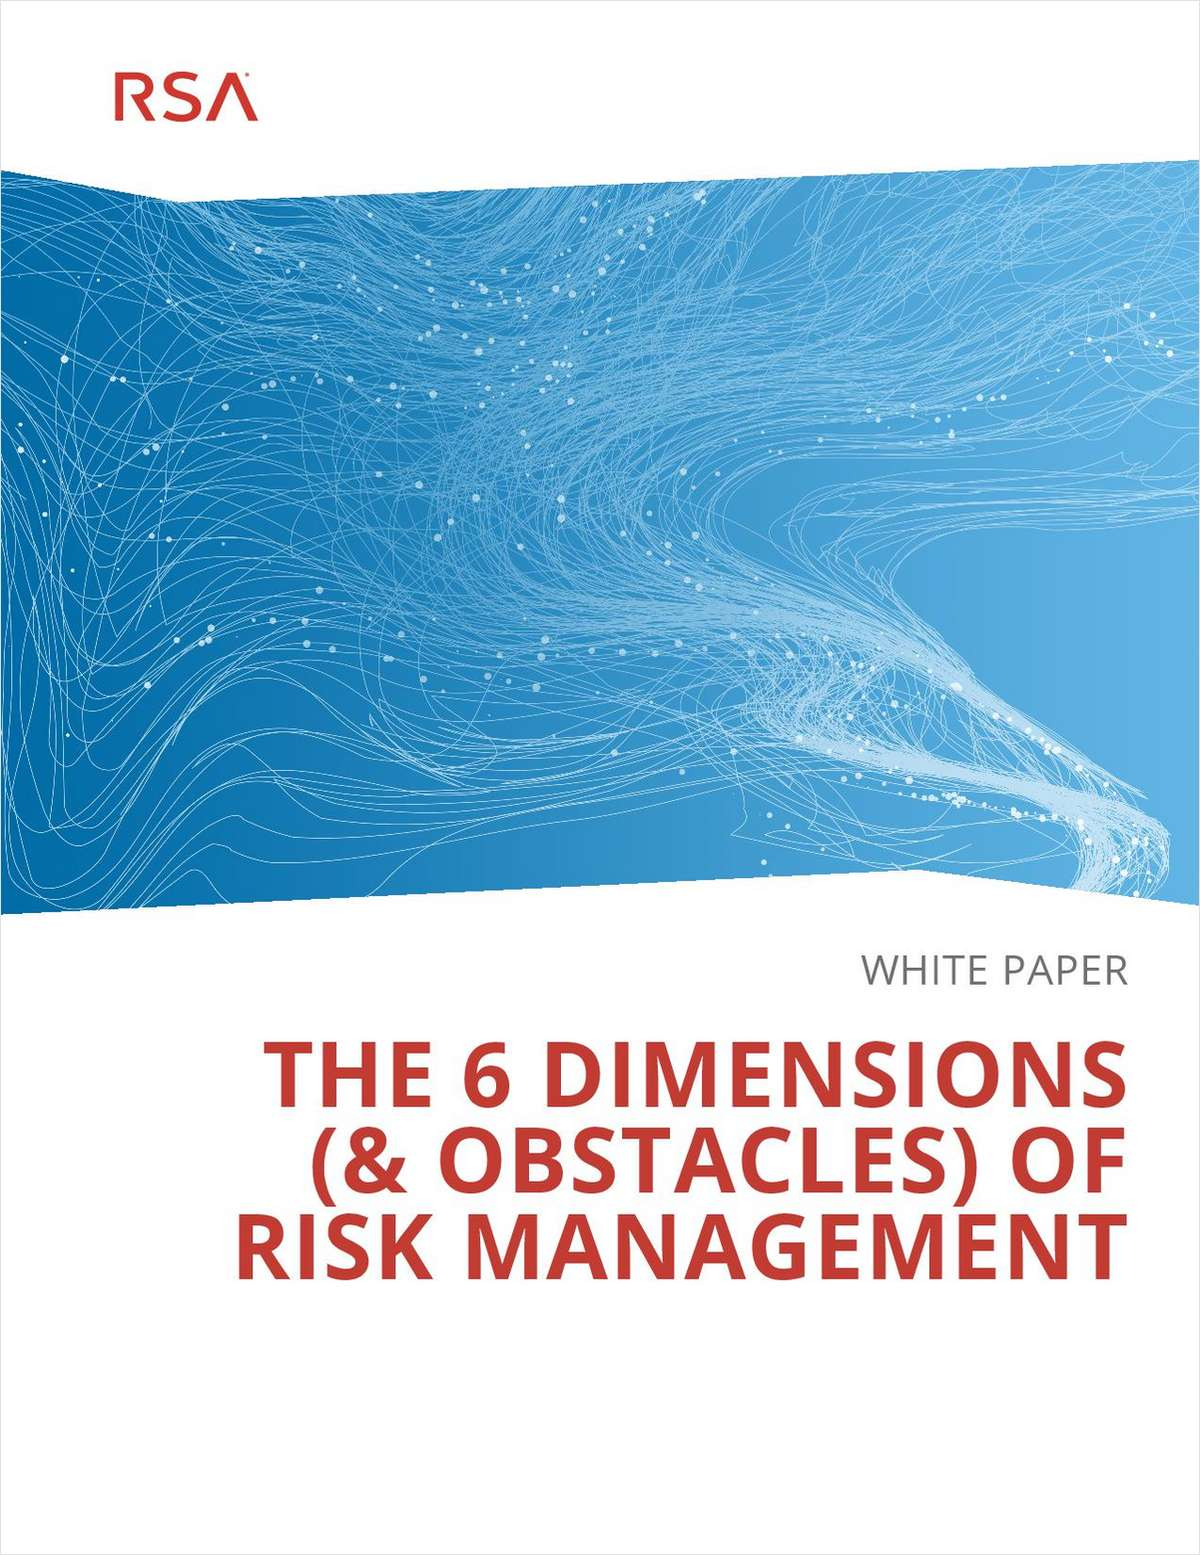 The 6 Dimensions (& Obstacles) of Risk Management